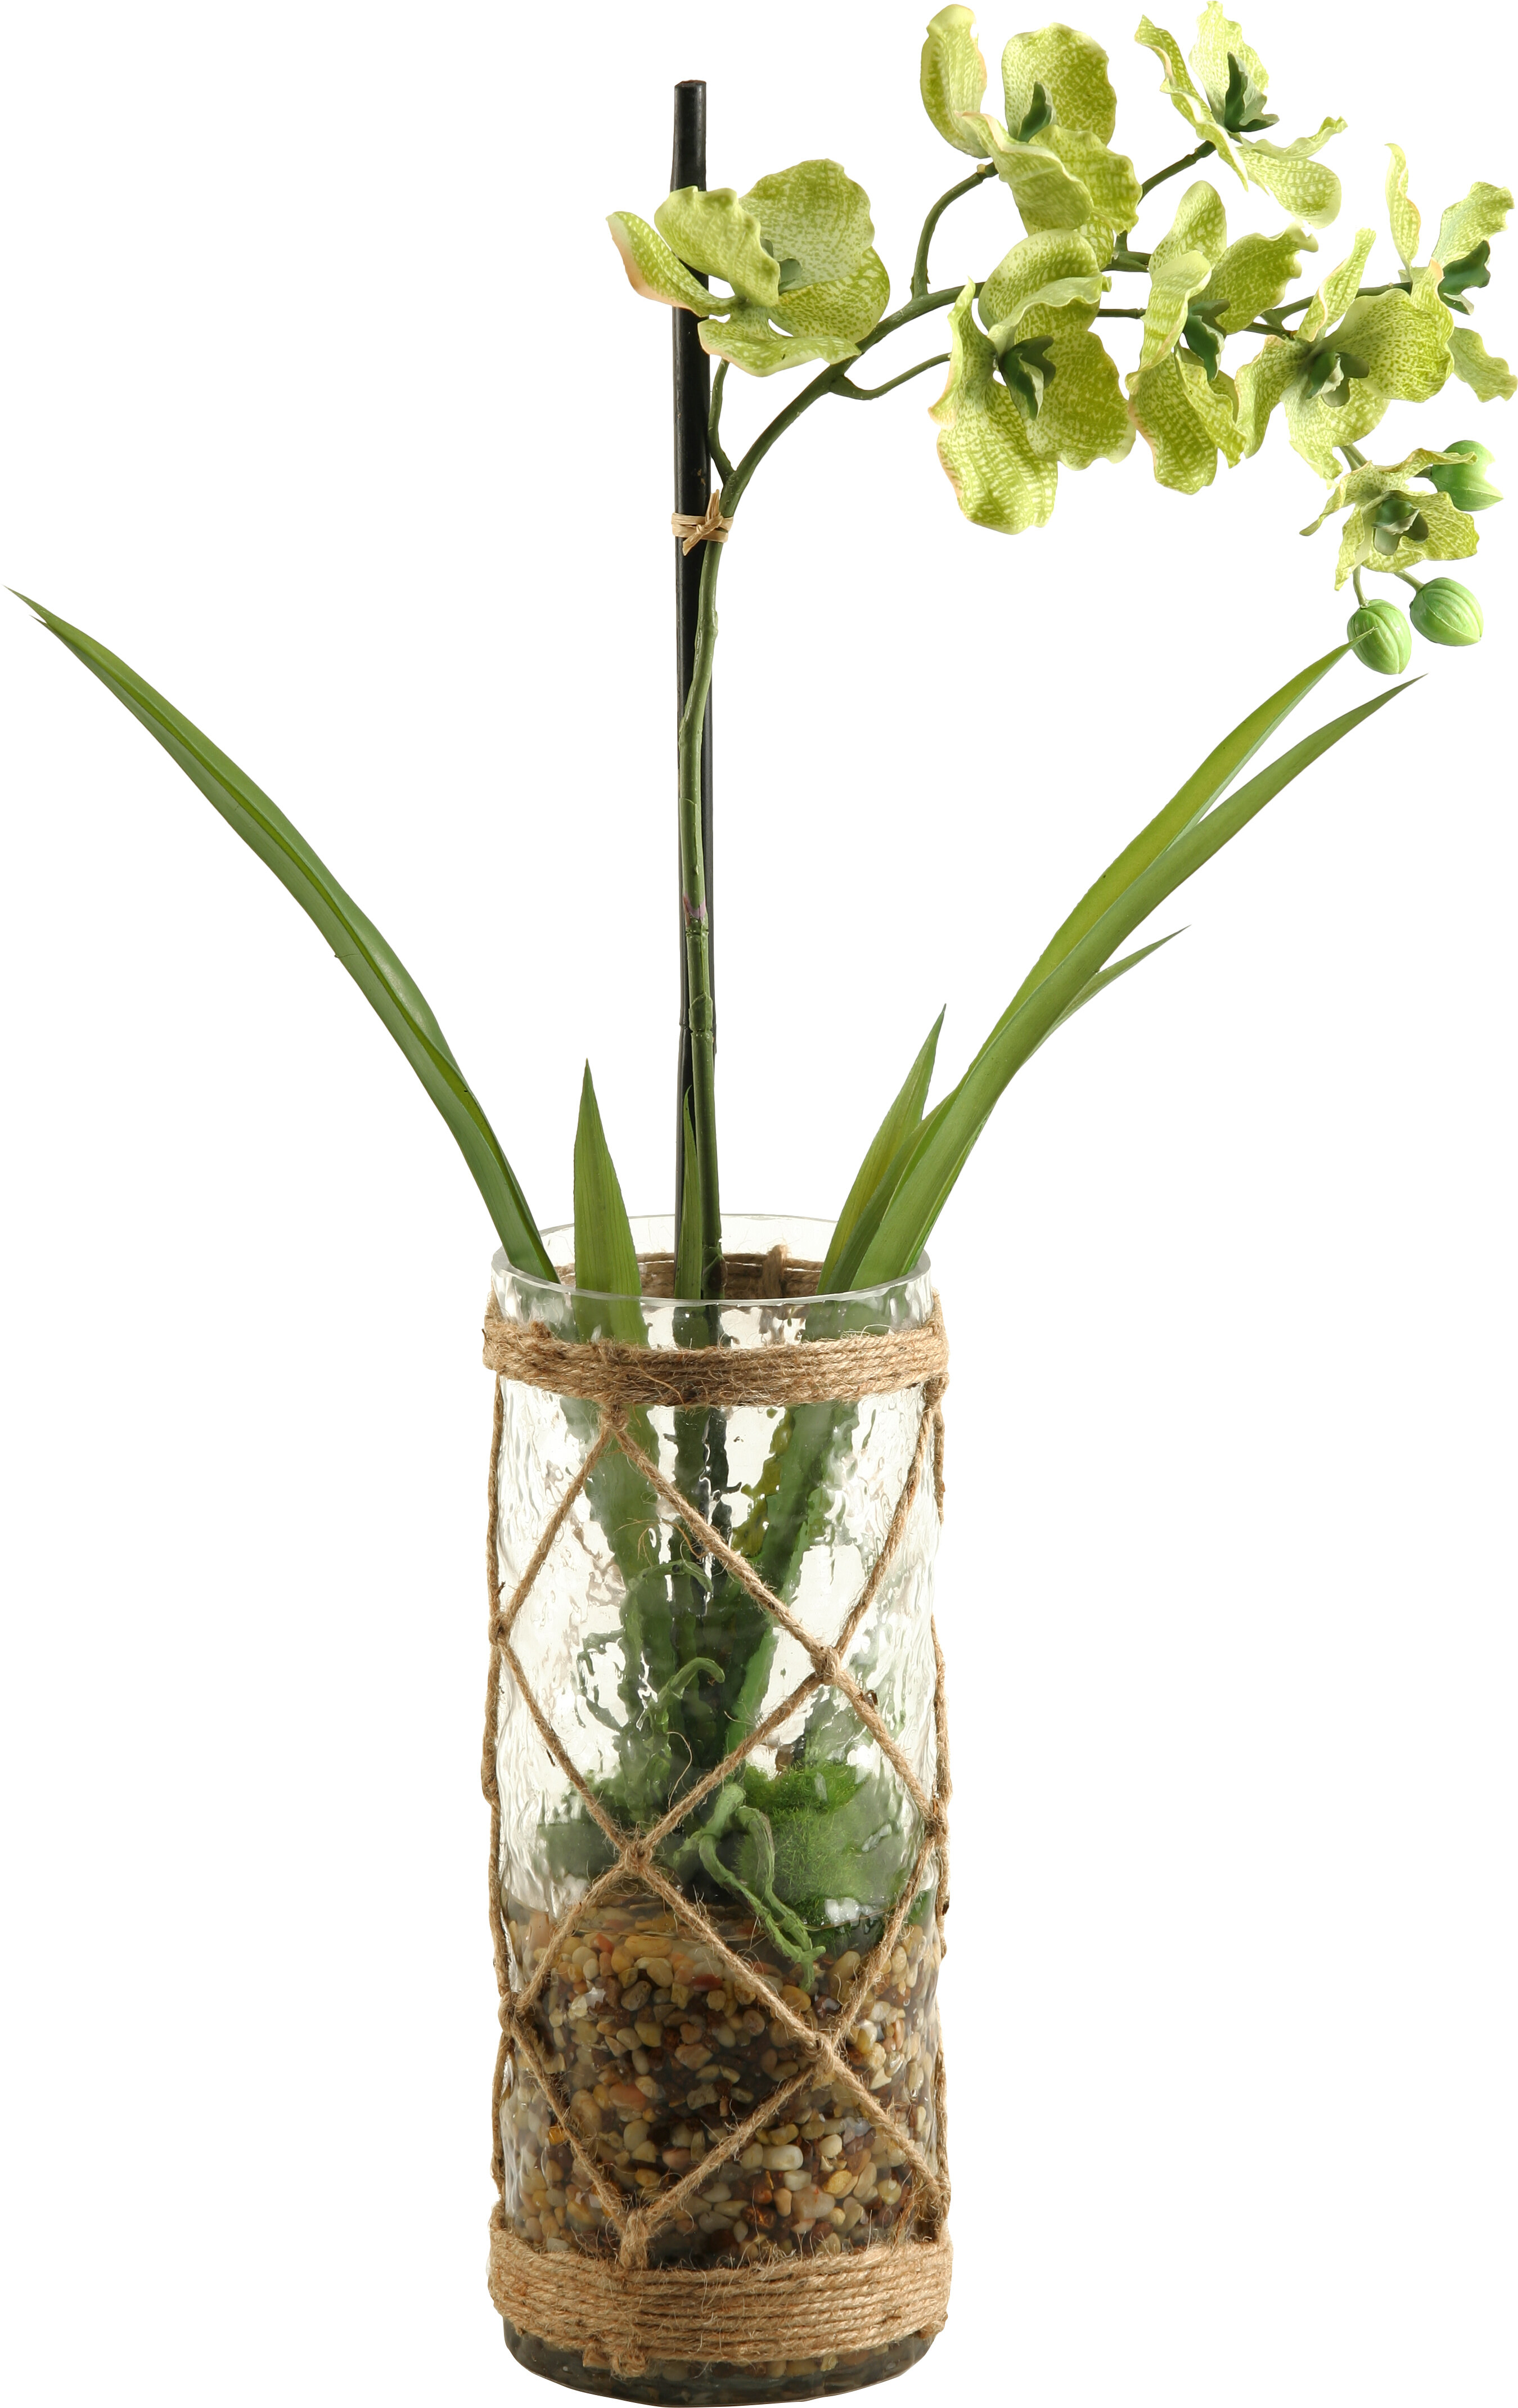 Vanda Orchid with Seagrass Netting Floral Arrangements in Glass Vase ...